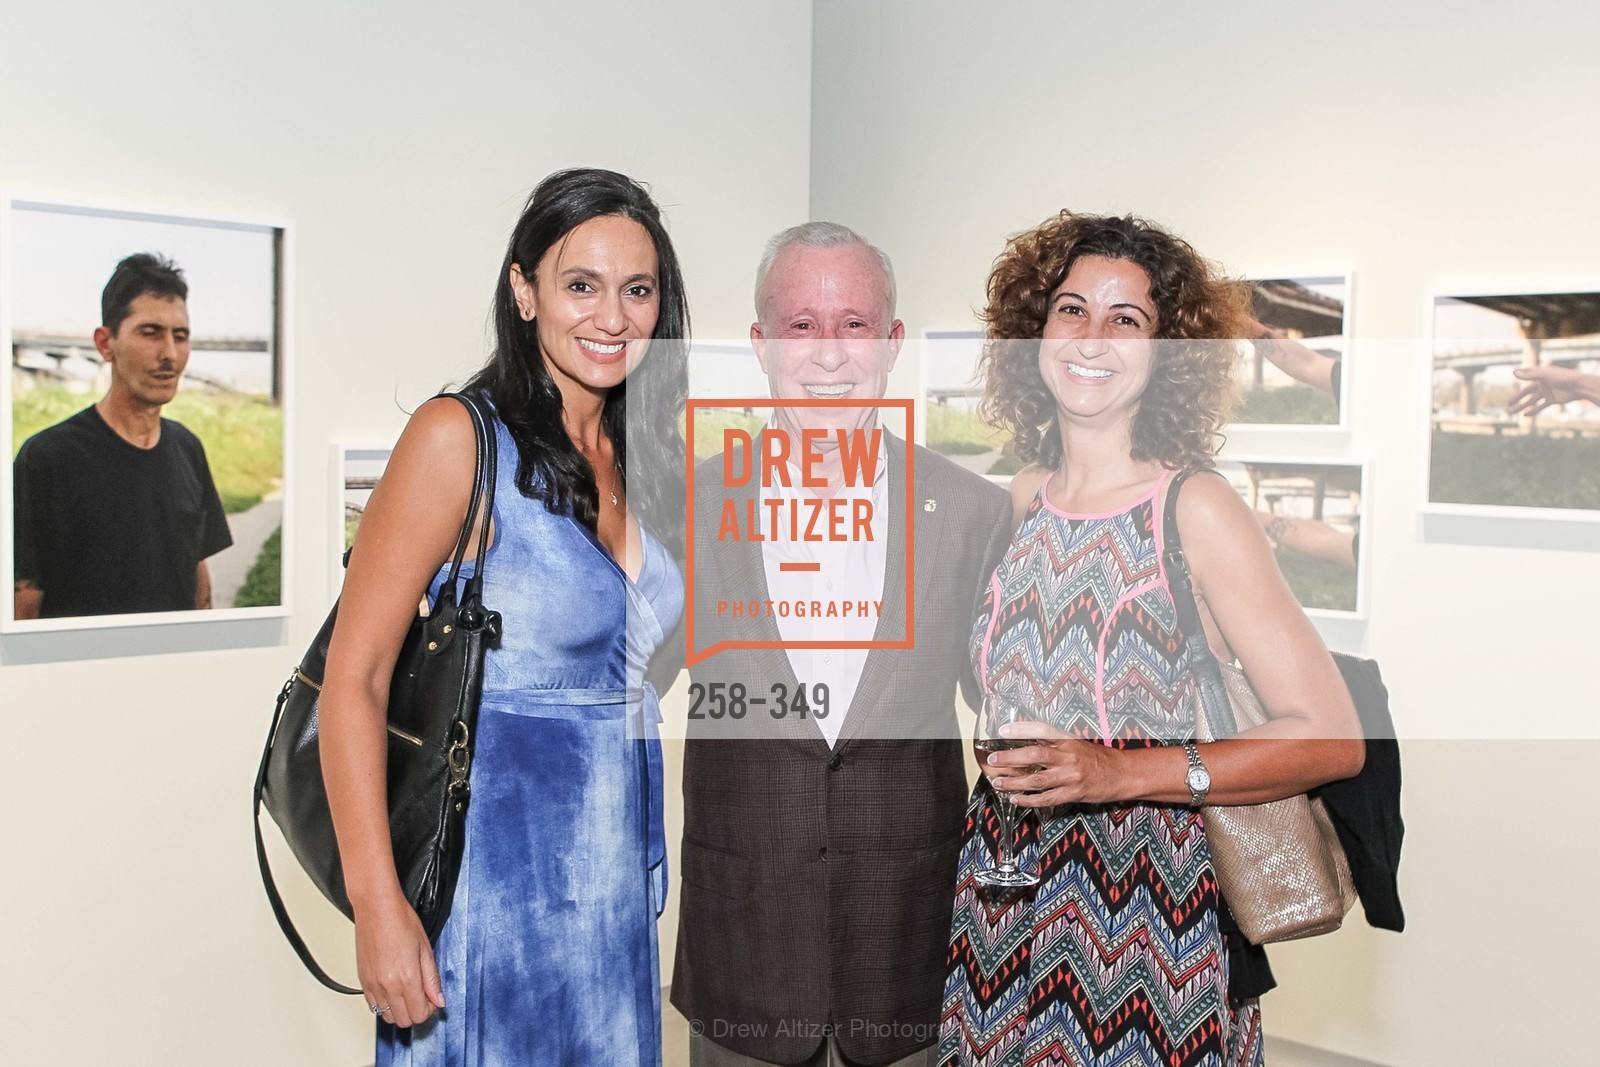 Heba Desouky, Stephen Doyle, Miriam White, Cocktails on the Pier- A BASIC Fund Thank You, Pier 24 Photography. 24 Pier The Embarcadero, October 8th, 2015,Drew Altizer, Drew Altizer Photography, full-service agency, private events, San Francisco photographer, photographer california